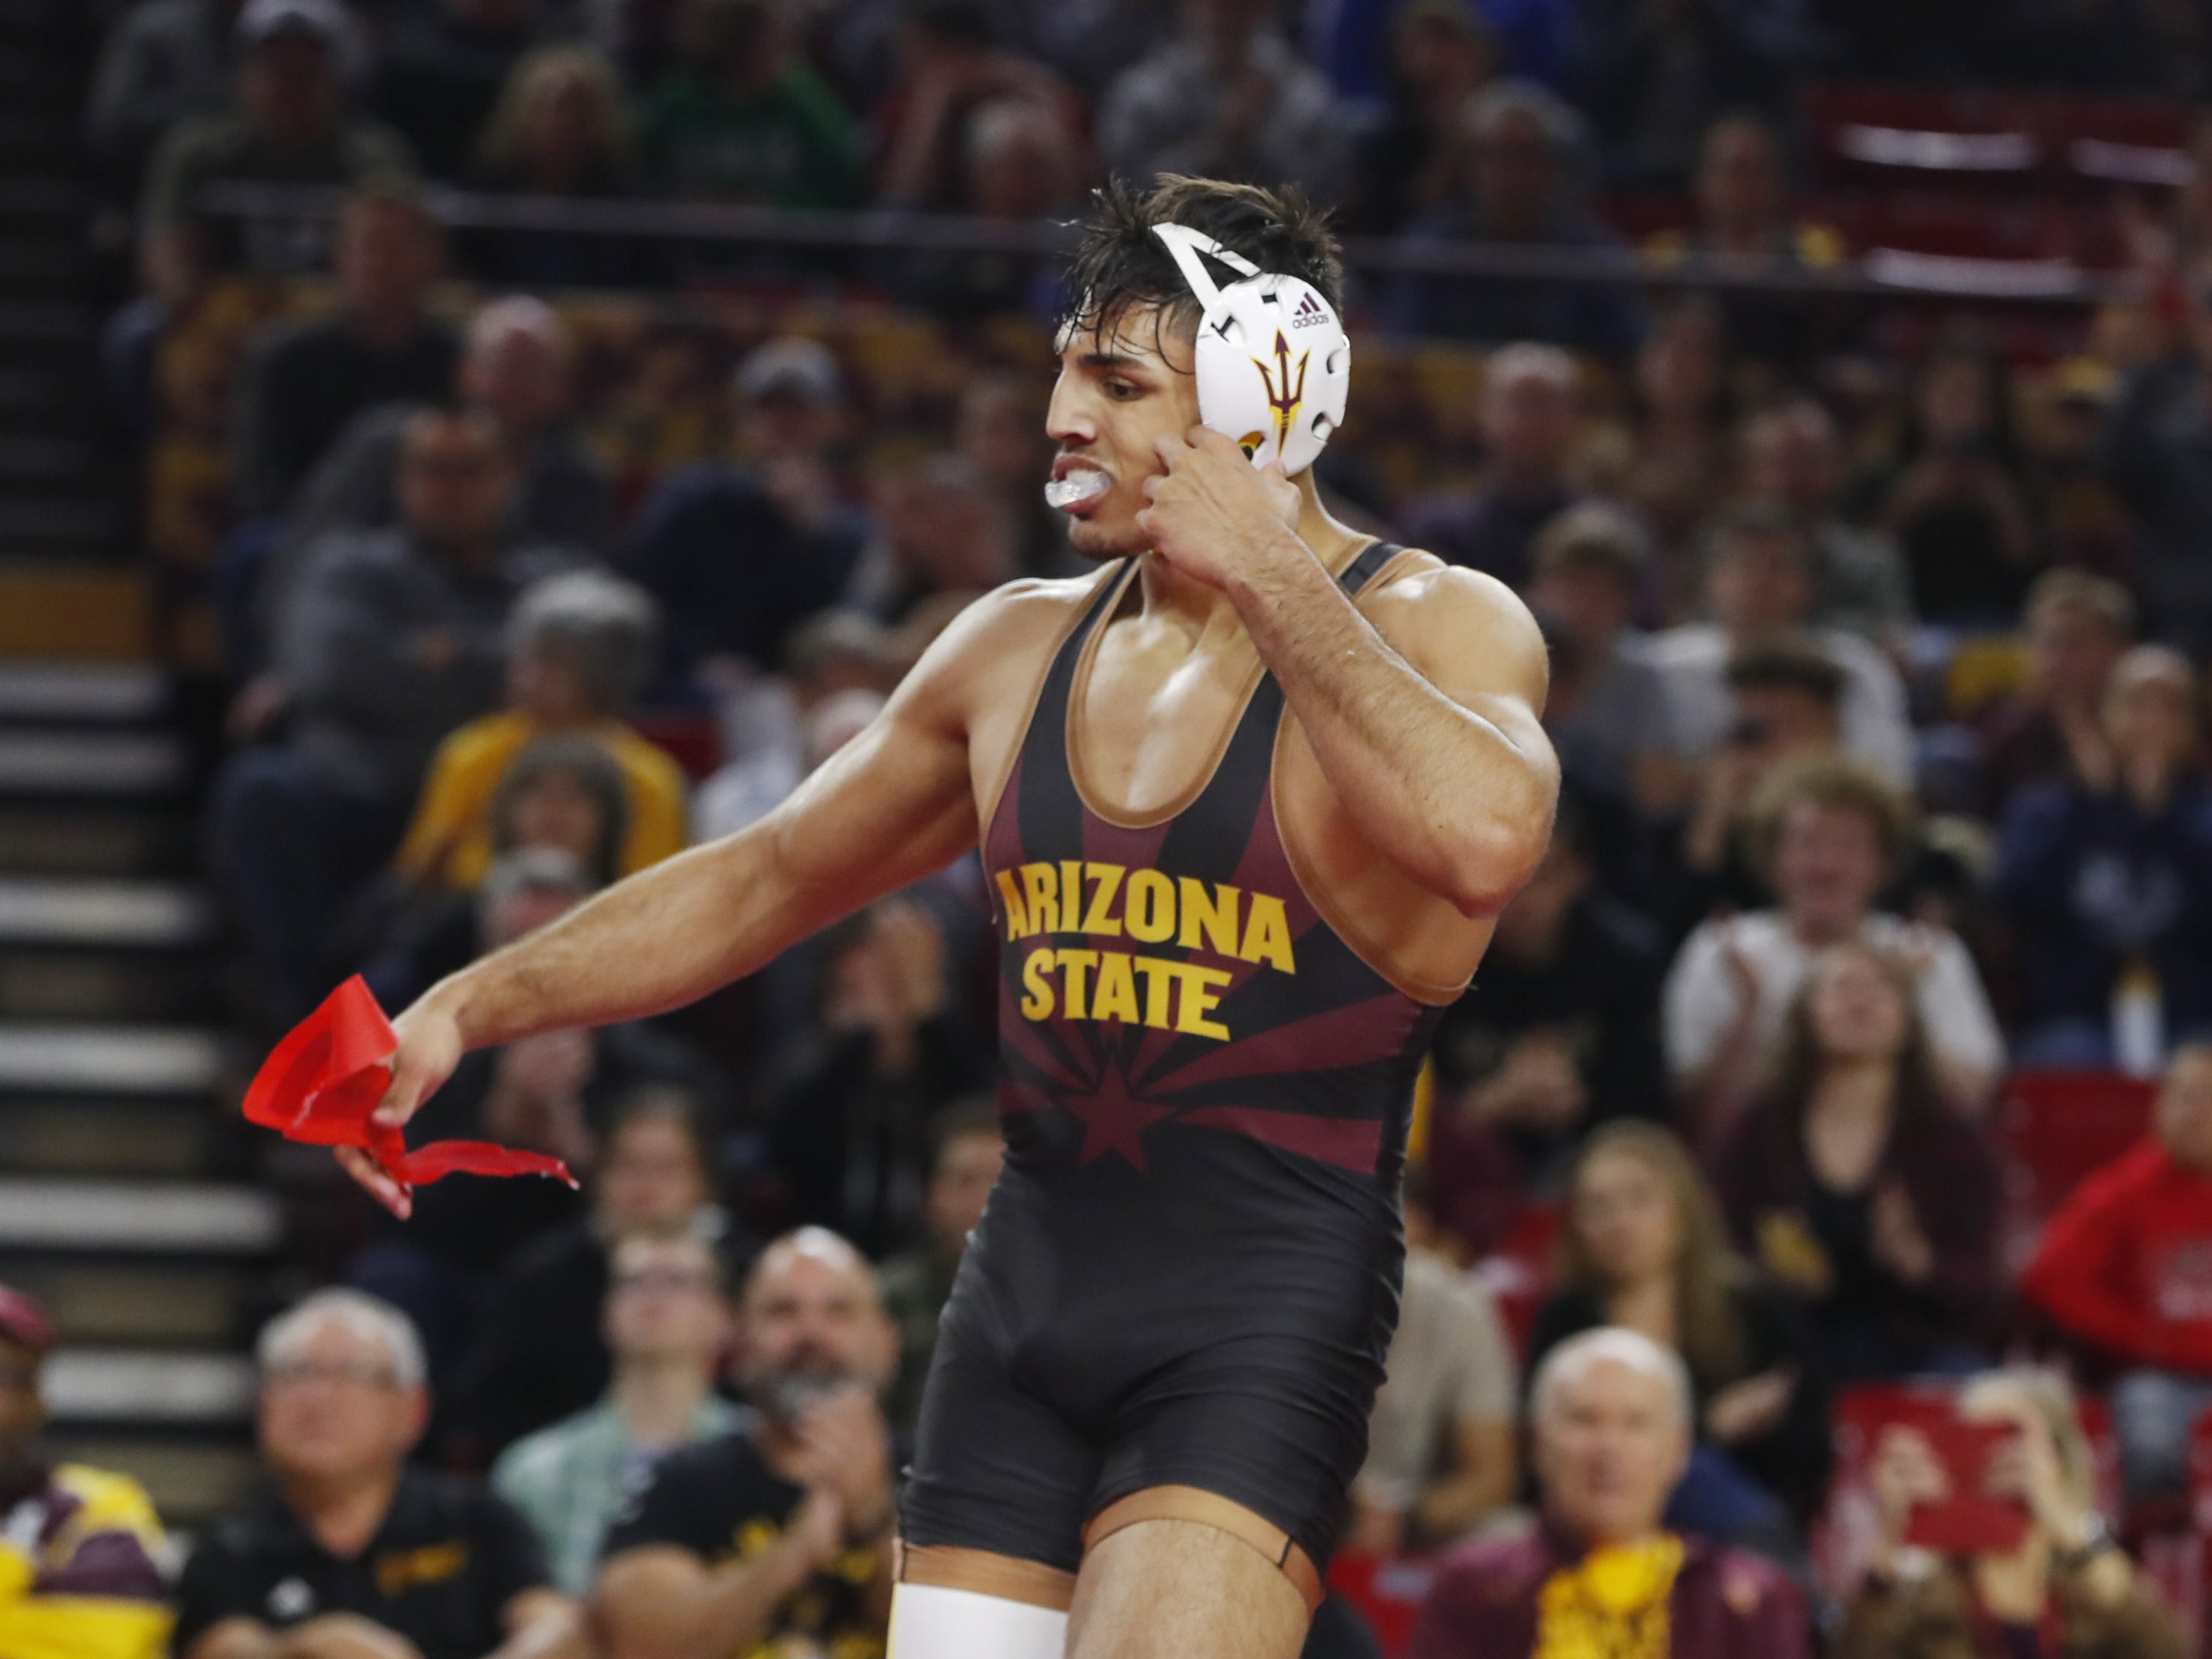 ASU's Zahid Valencia (in black) reacts to beating Michigan's Myles Amine (in blue and yellow) during a 174 lbs match at Wells Fargo Arena in Tempe, Ariz. on January 5, 2019.